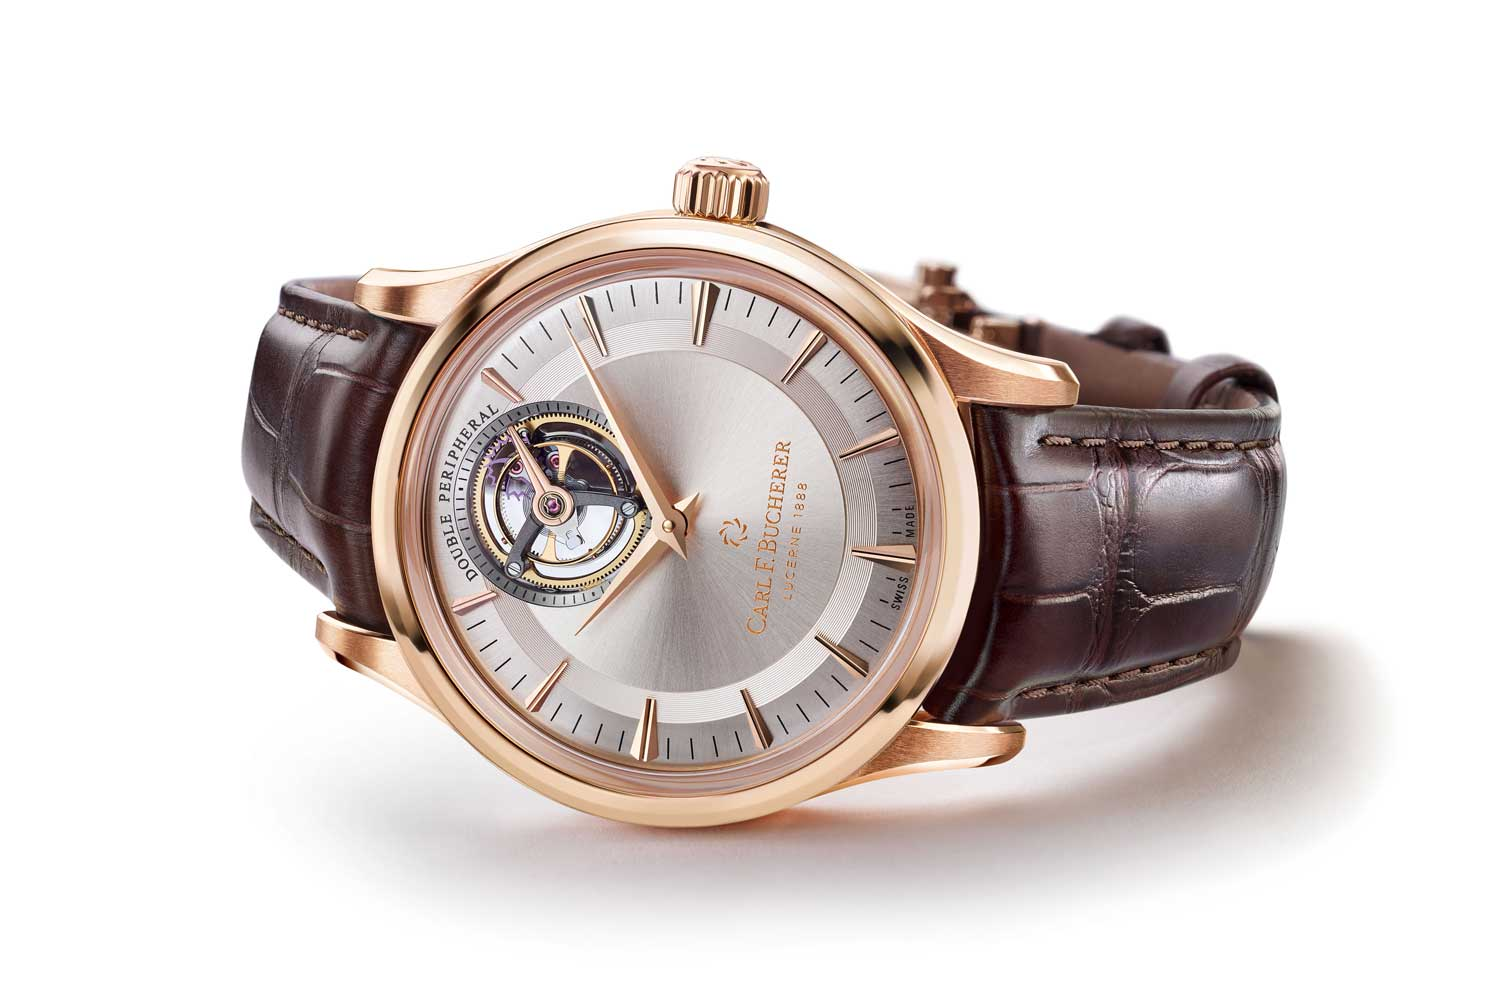 In 2018, the brand surpassed the peripheral technology with the introduction of the Heritage Tourbillon Double Peripheral – Limited Edition